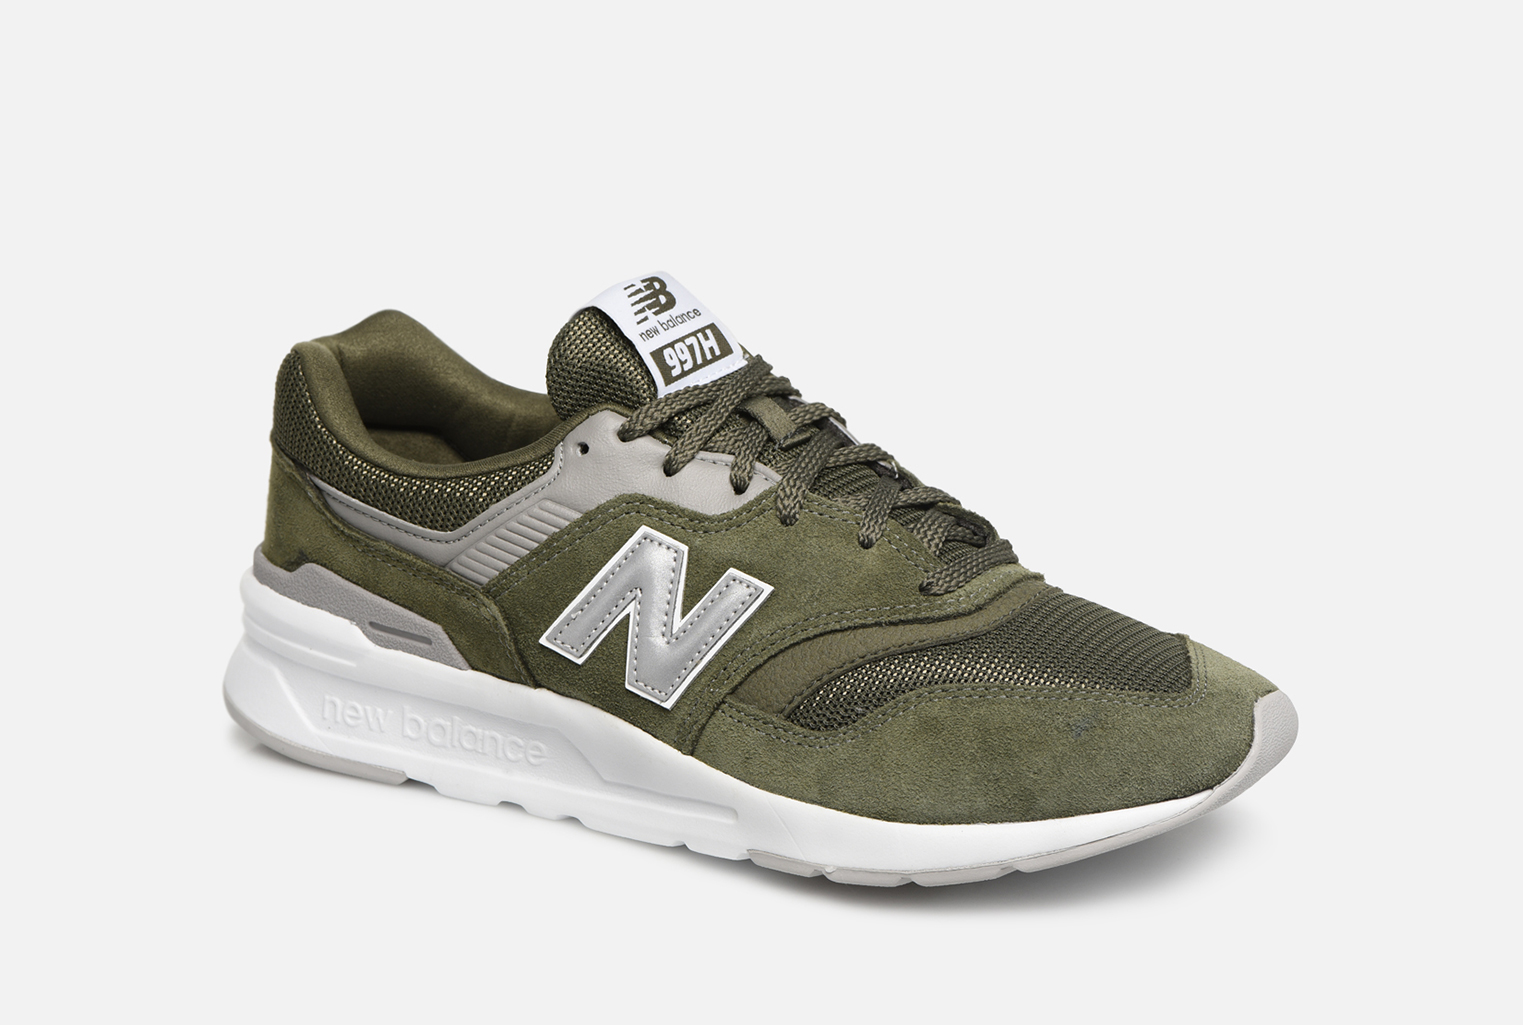 9951943775af New Balance | Boutique de chaussures New Balance